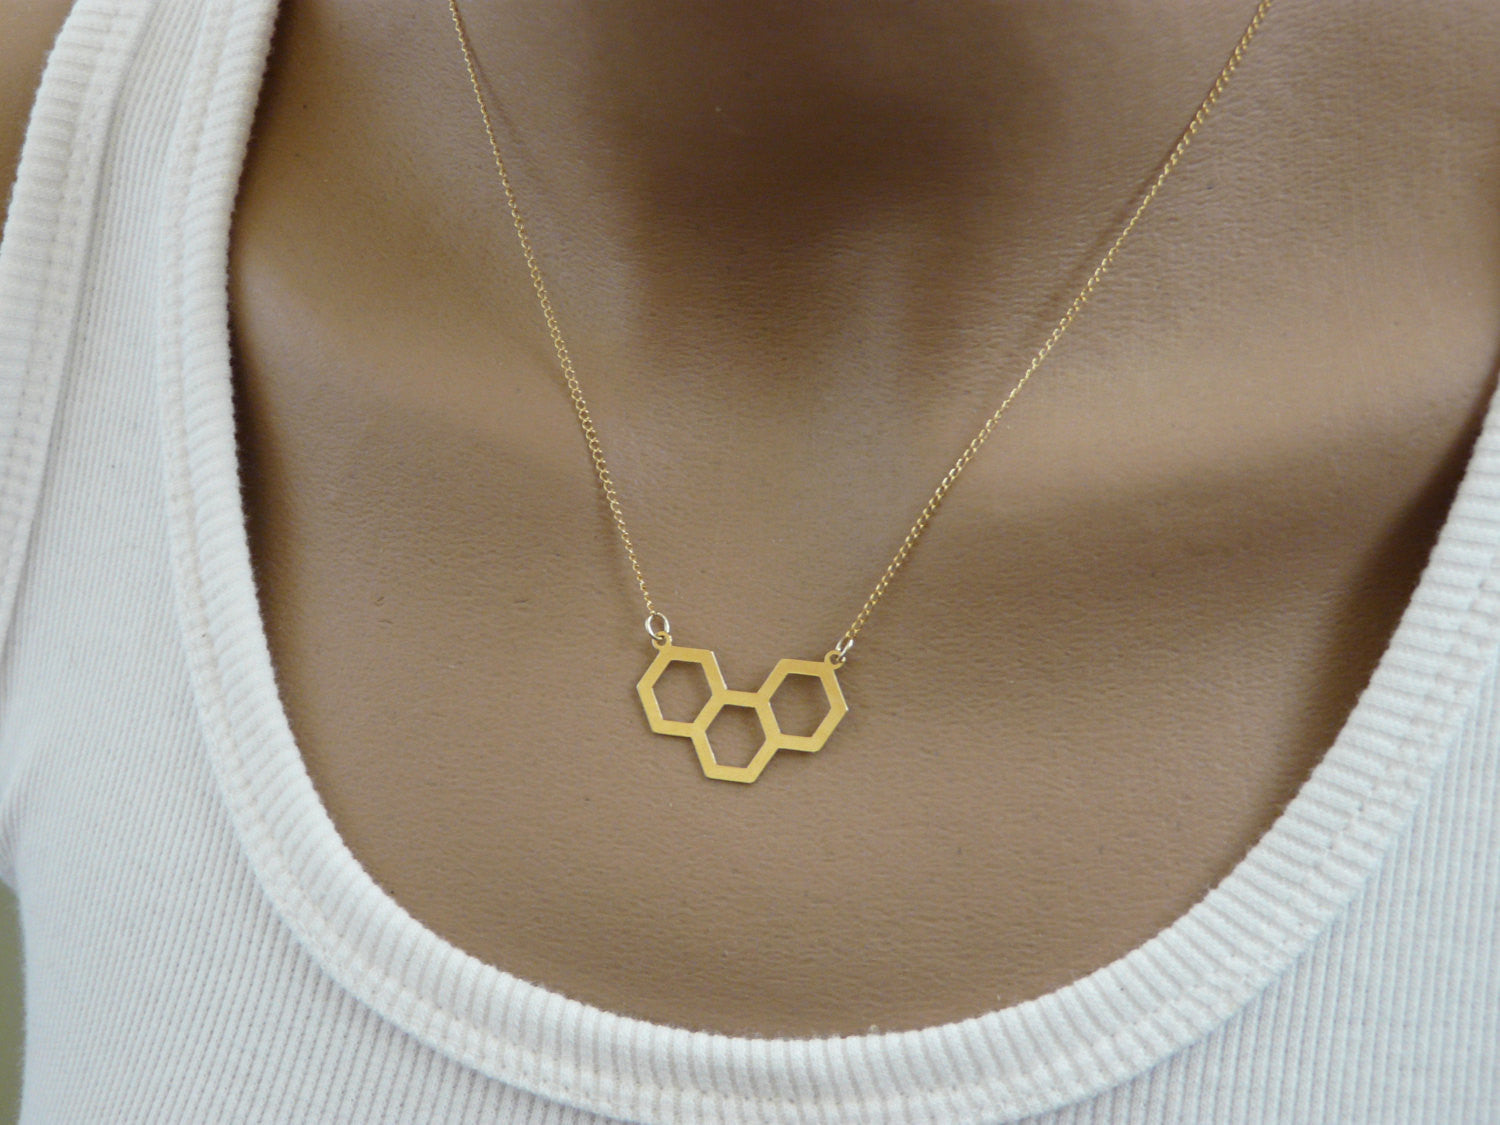 Honeycomb geometric necklace - OpaLandJewelry